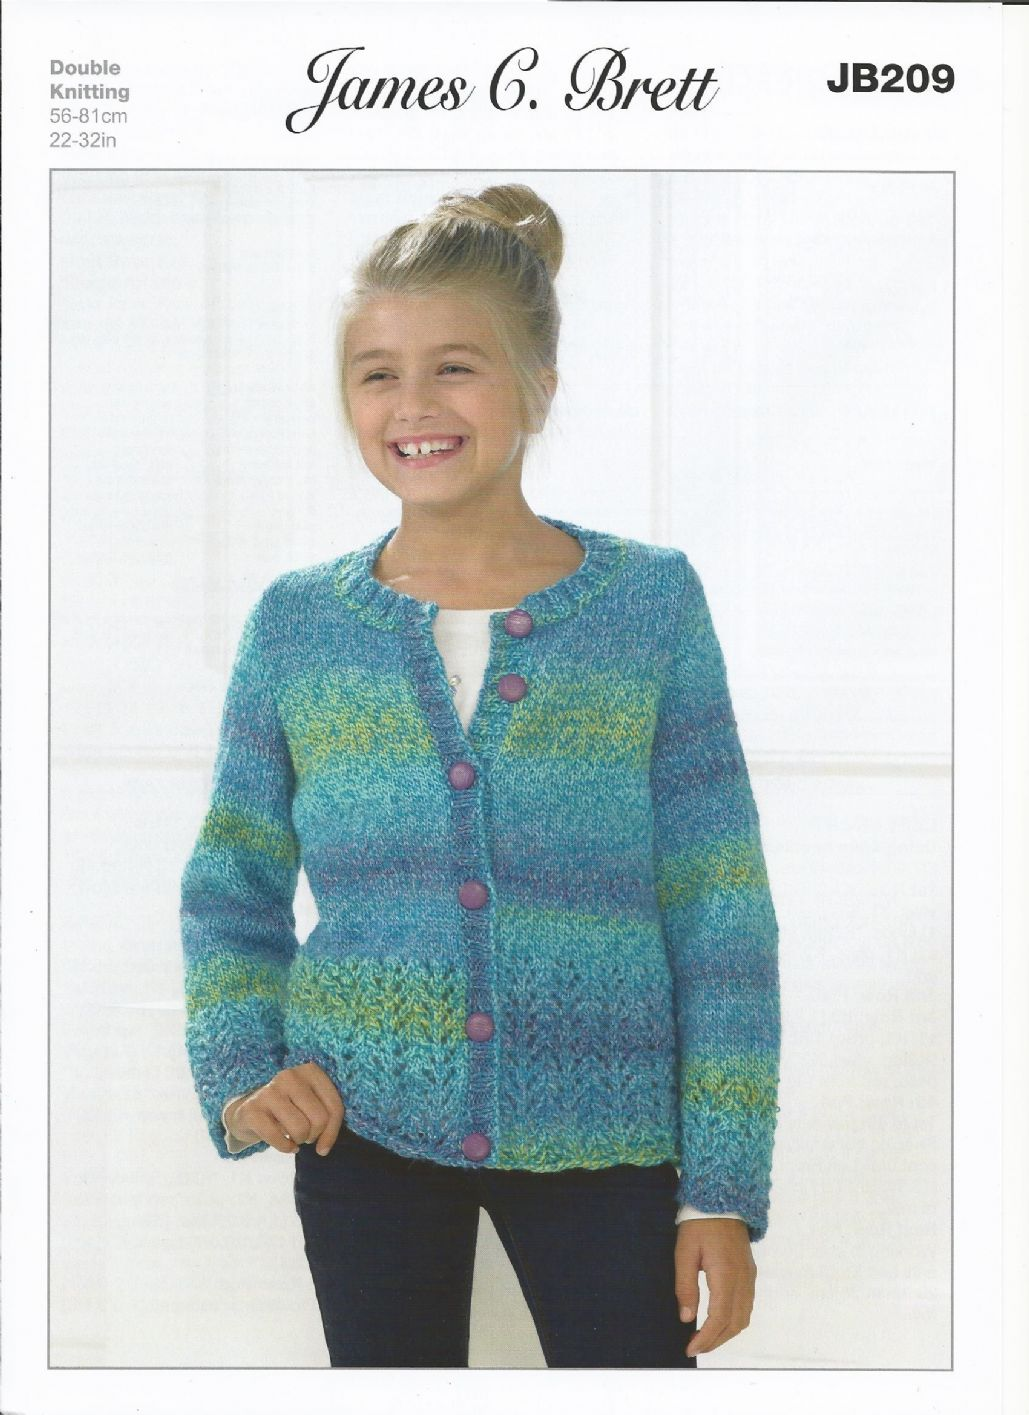 Knitting Pattern Cardigan Girl : James C Brett Girls Cardigan Marble DK Knitting Pattern JB209